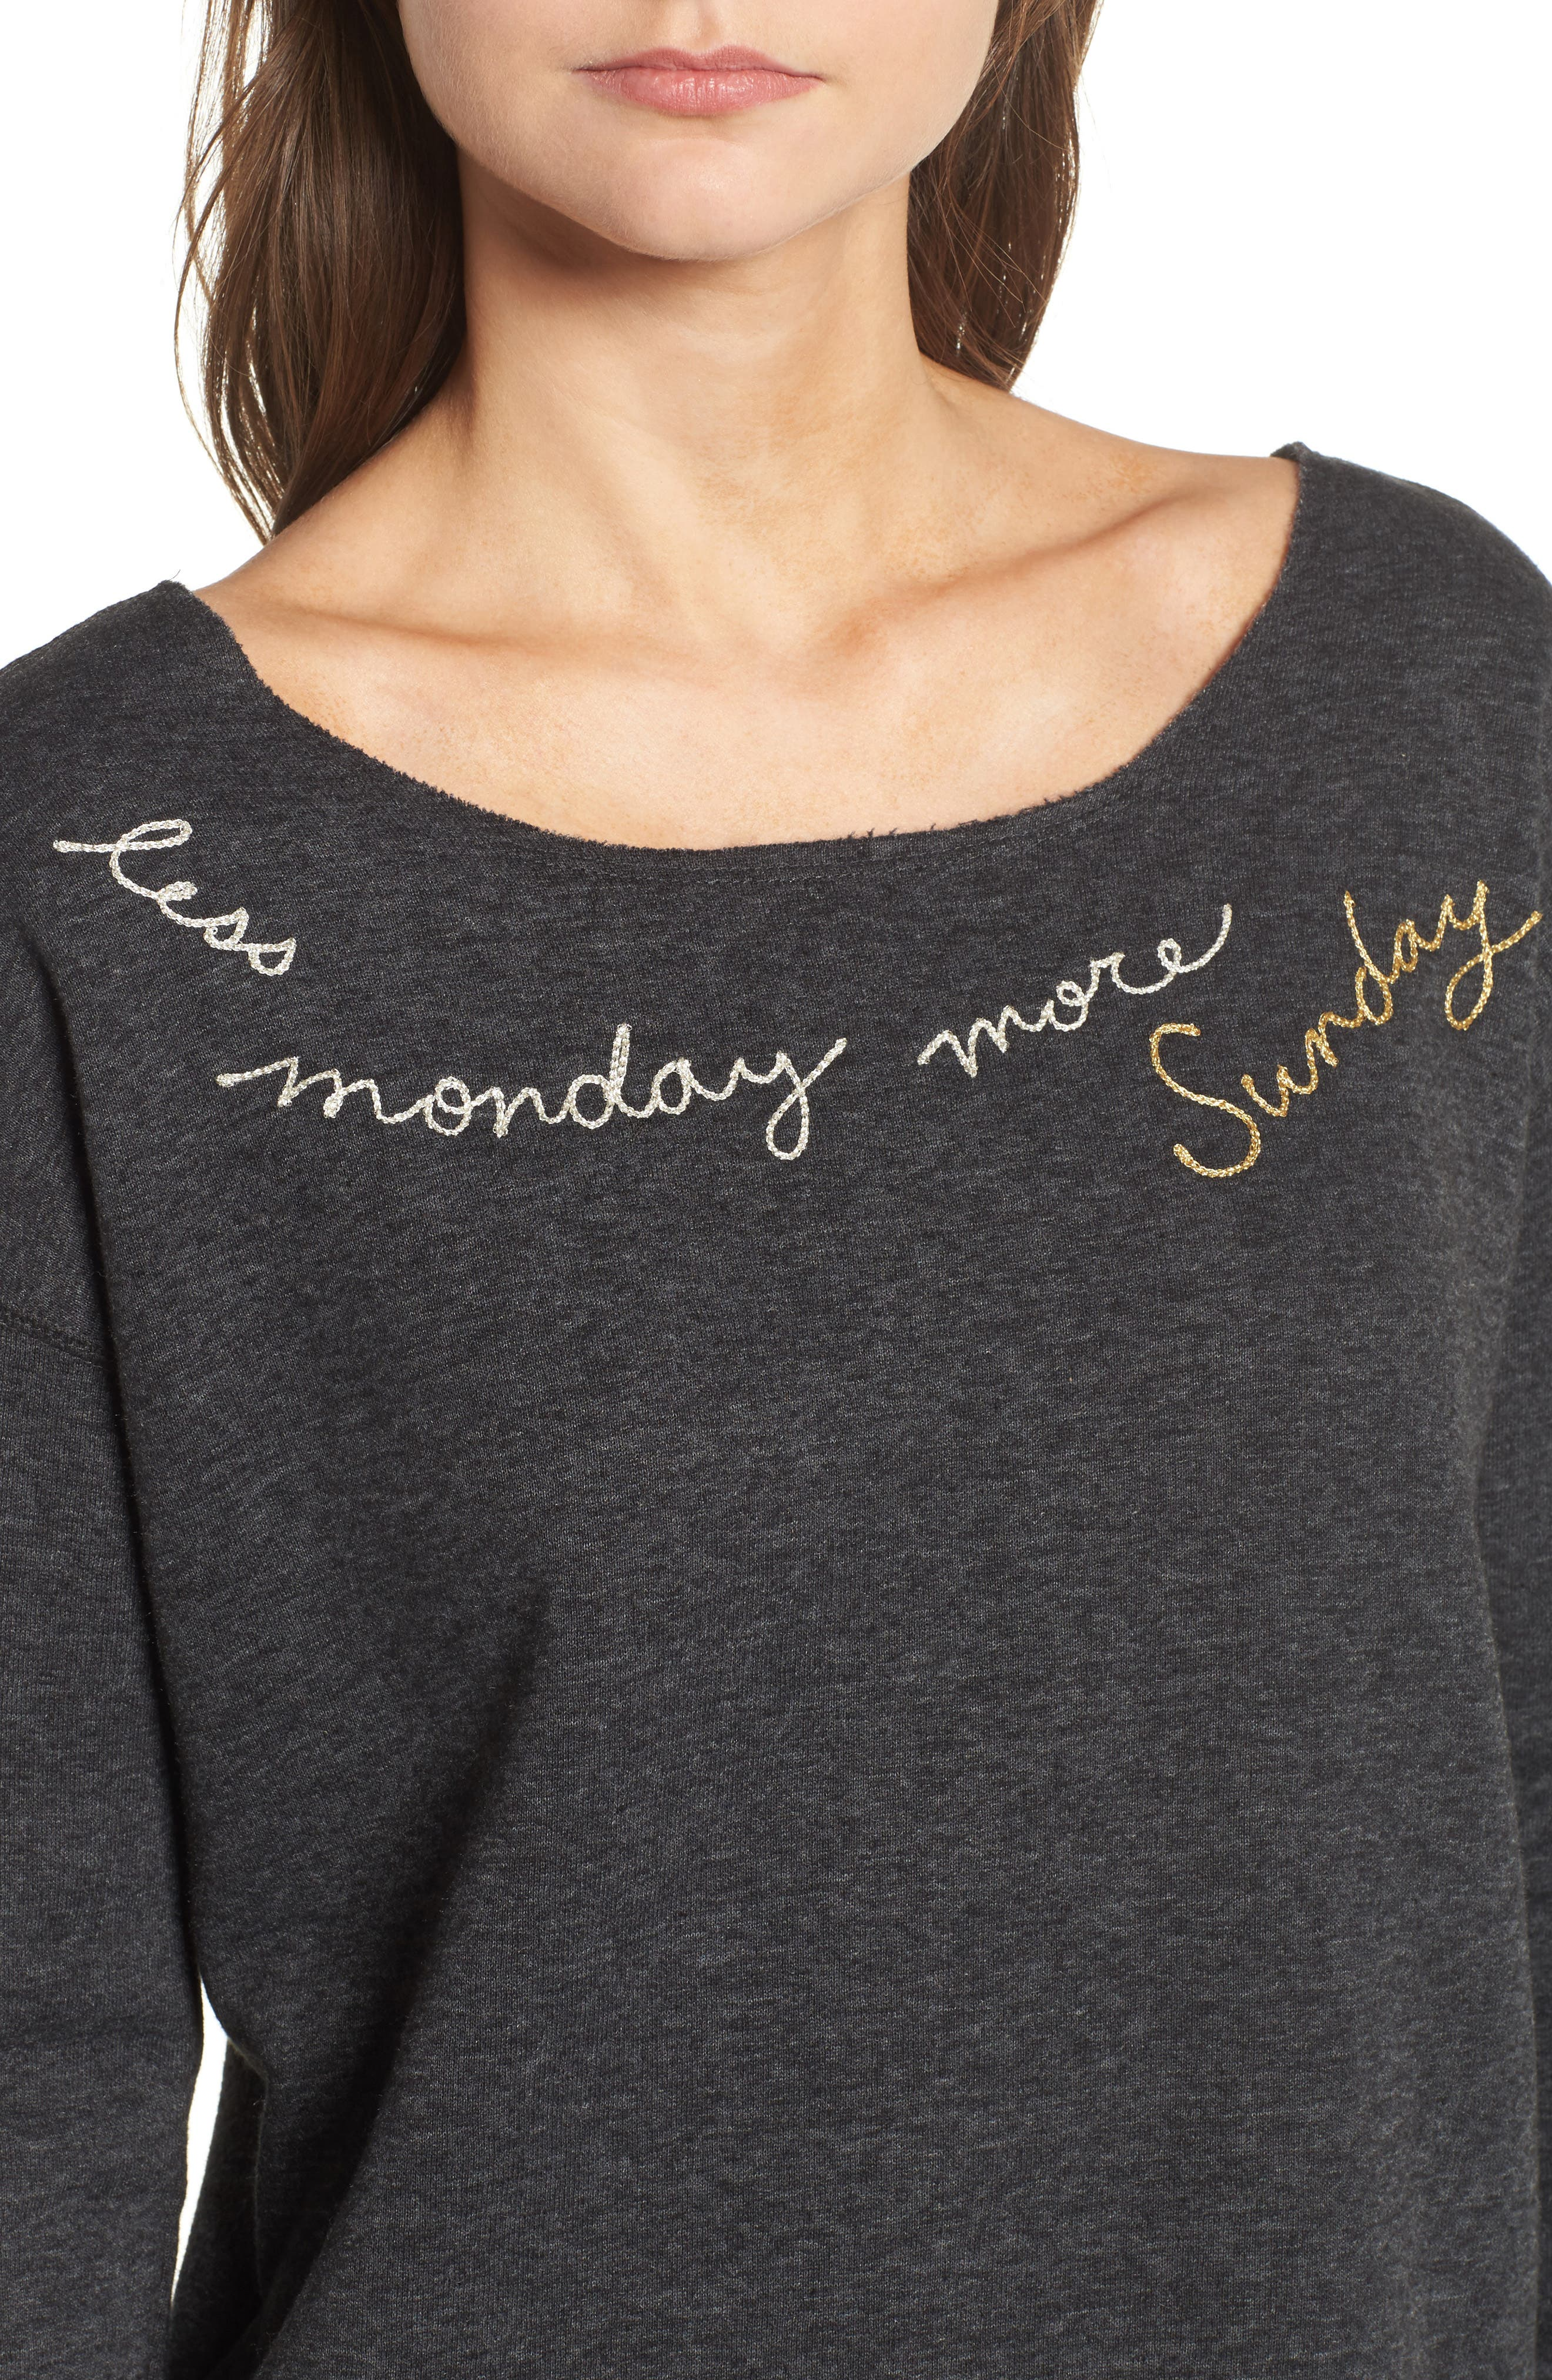 Less Monday More Sunday Sweatshirt,                             Alternate thumbnail 4, color,                             Charcoal